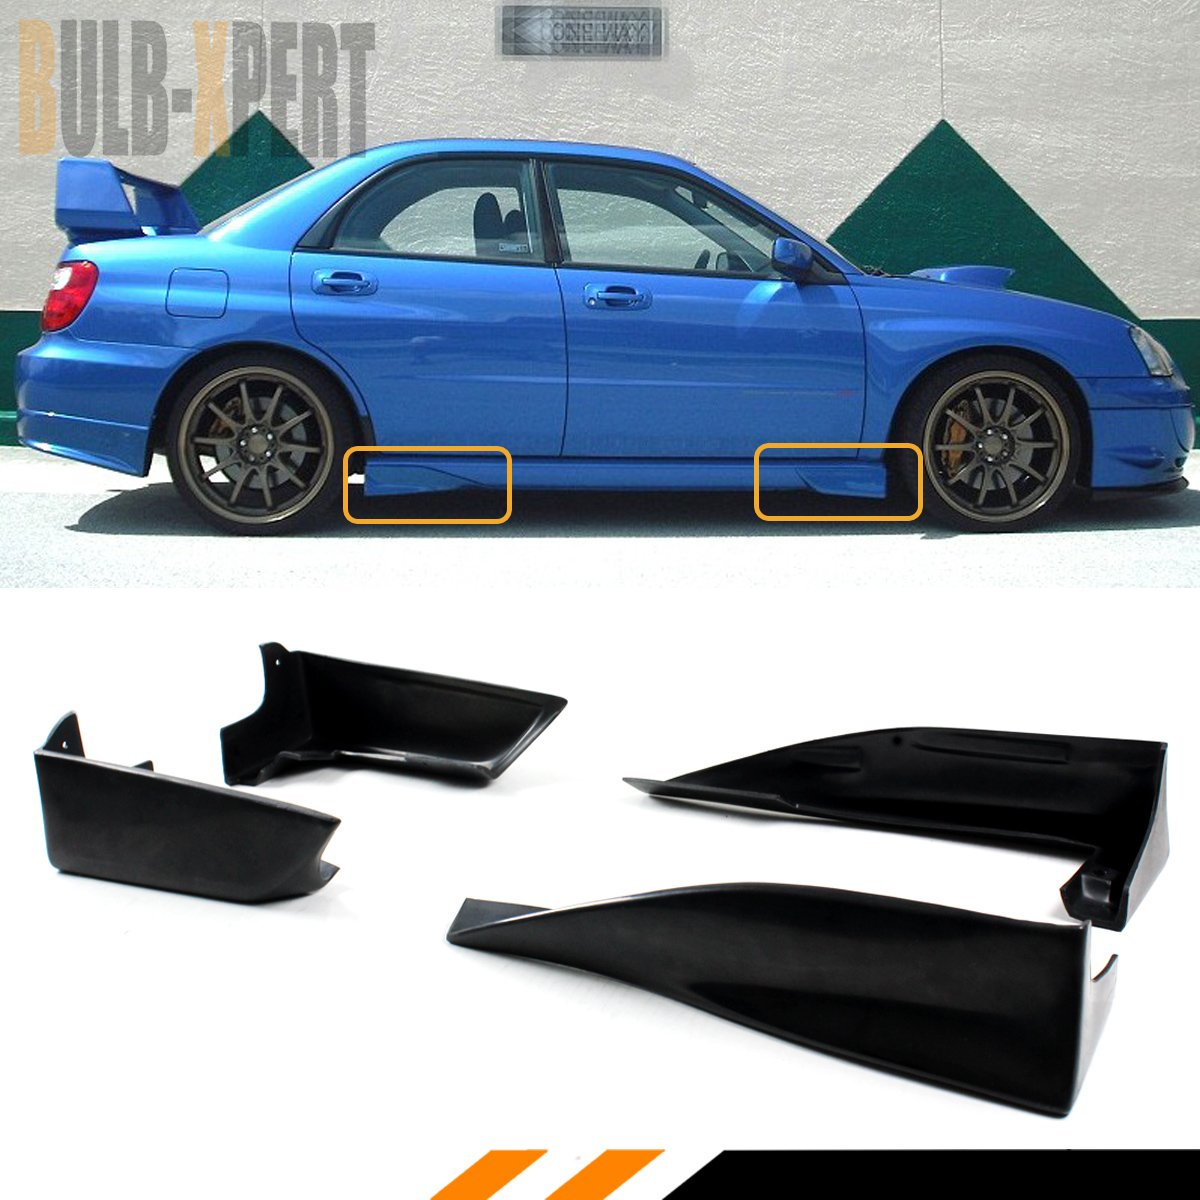 FOR 2002-2007 IMPREZA WRX STI GD FRONT+REAR SIDE SKIRT AERO GUARD STRAKE SPATS COMBO Cuztom_Tuning